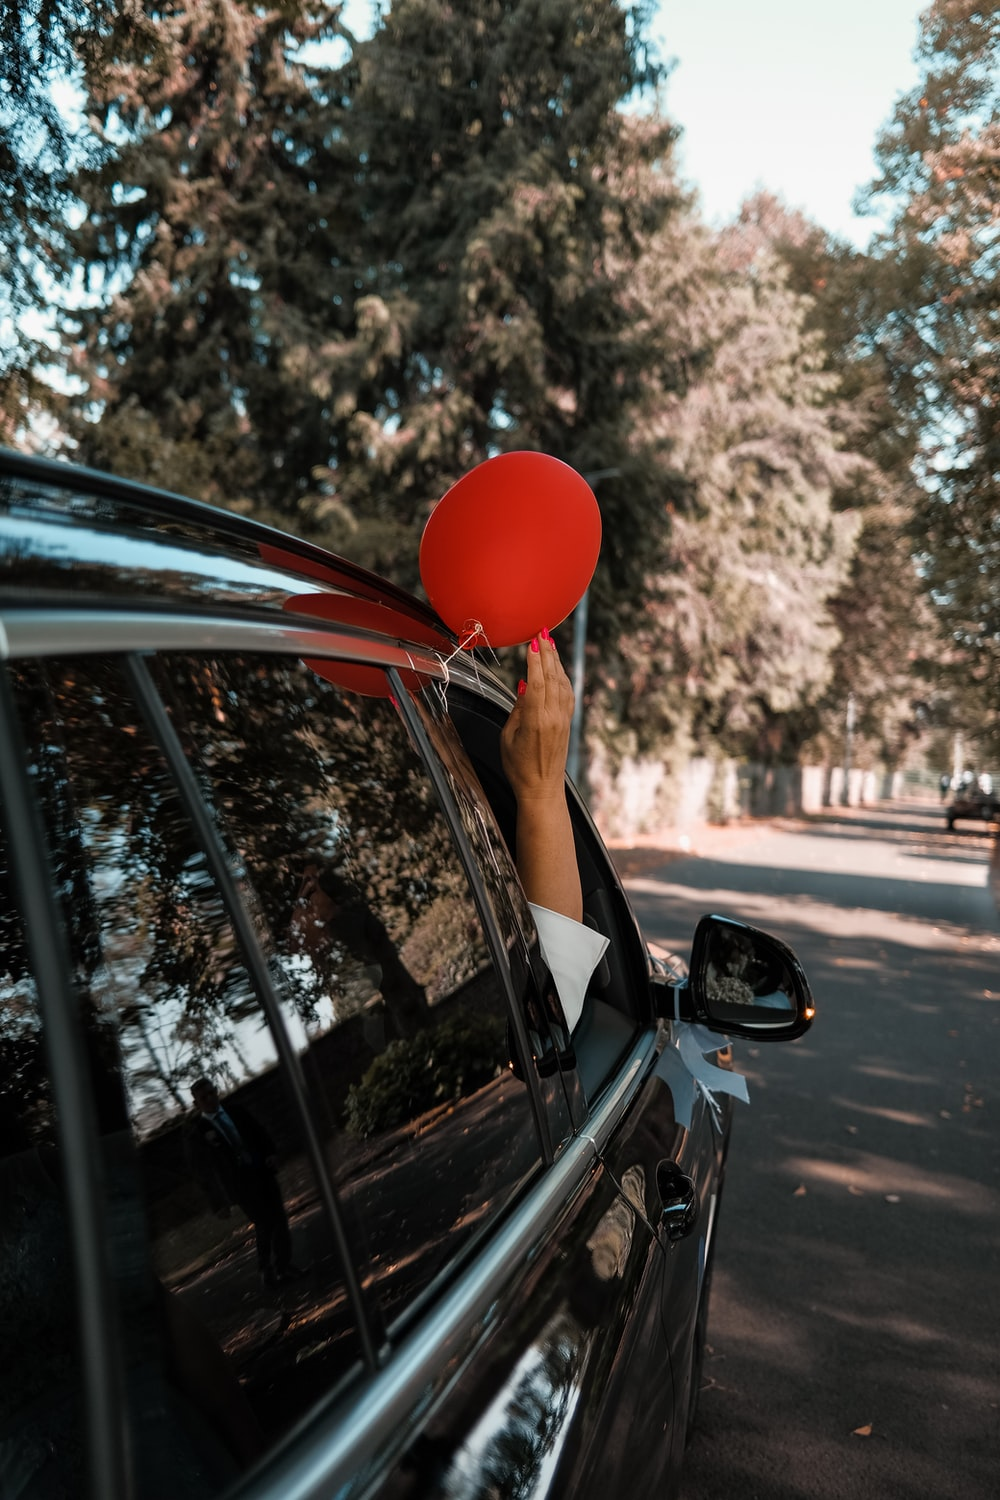 person holding red balloon in car